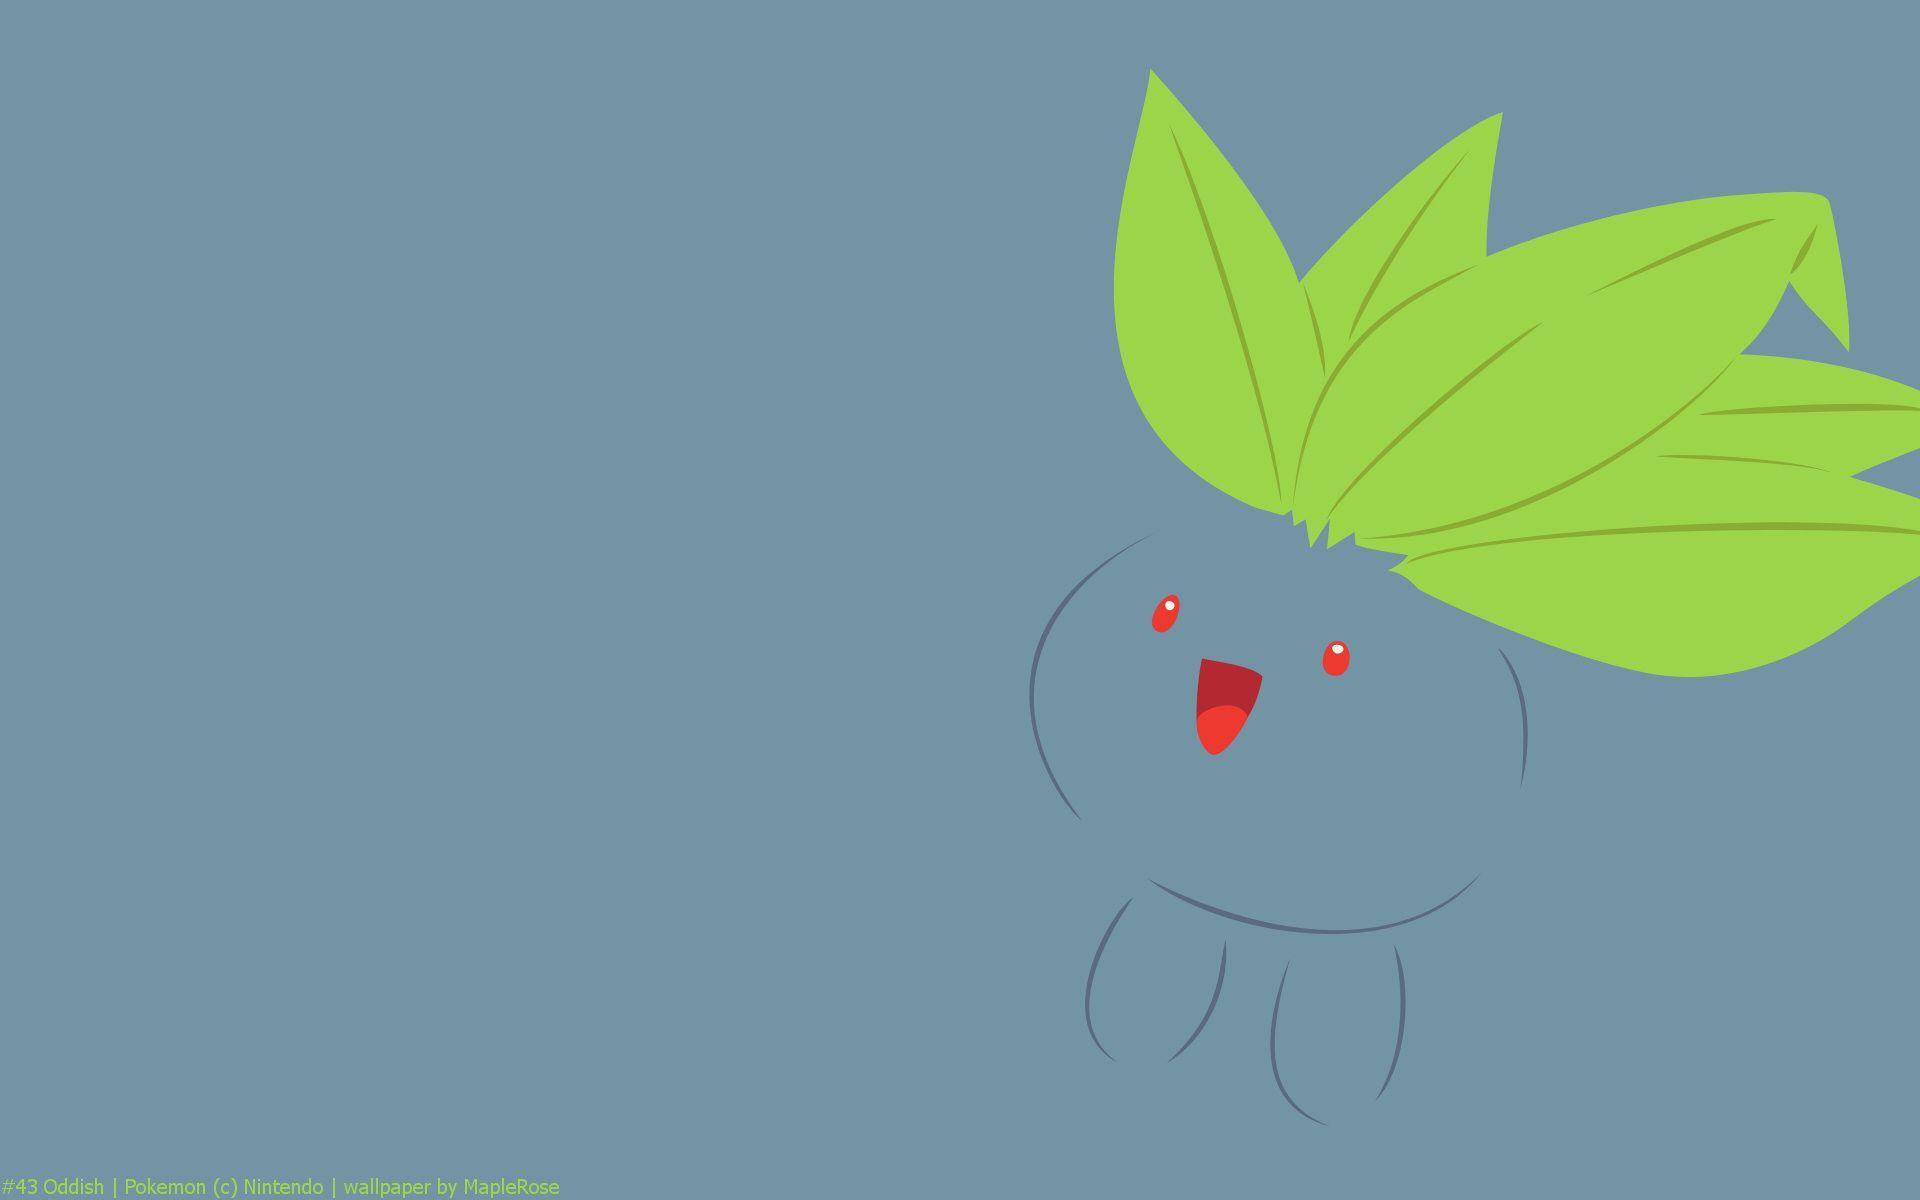 Oddish Pokemon HD Wallpaper - Free HD wallpapers, Iphone, Samsung ...